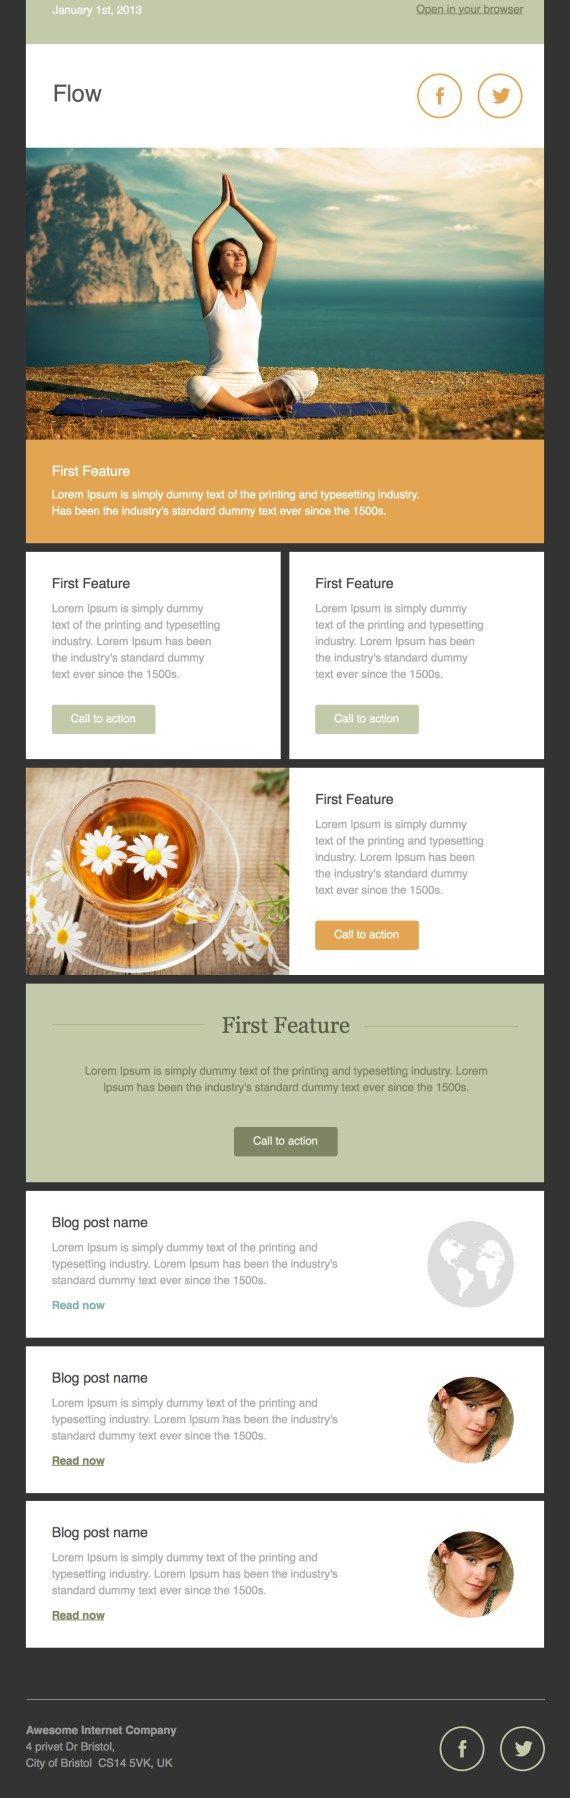 free online newsletter templates - best 25 school newsletter template ideas on pinterest